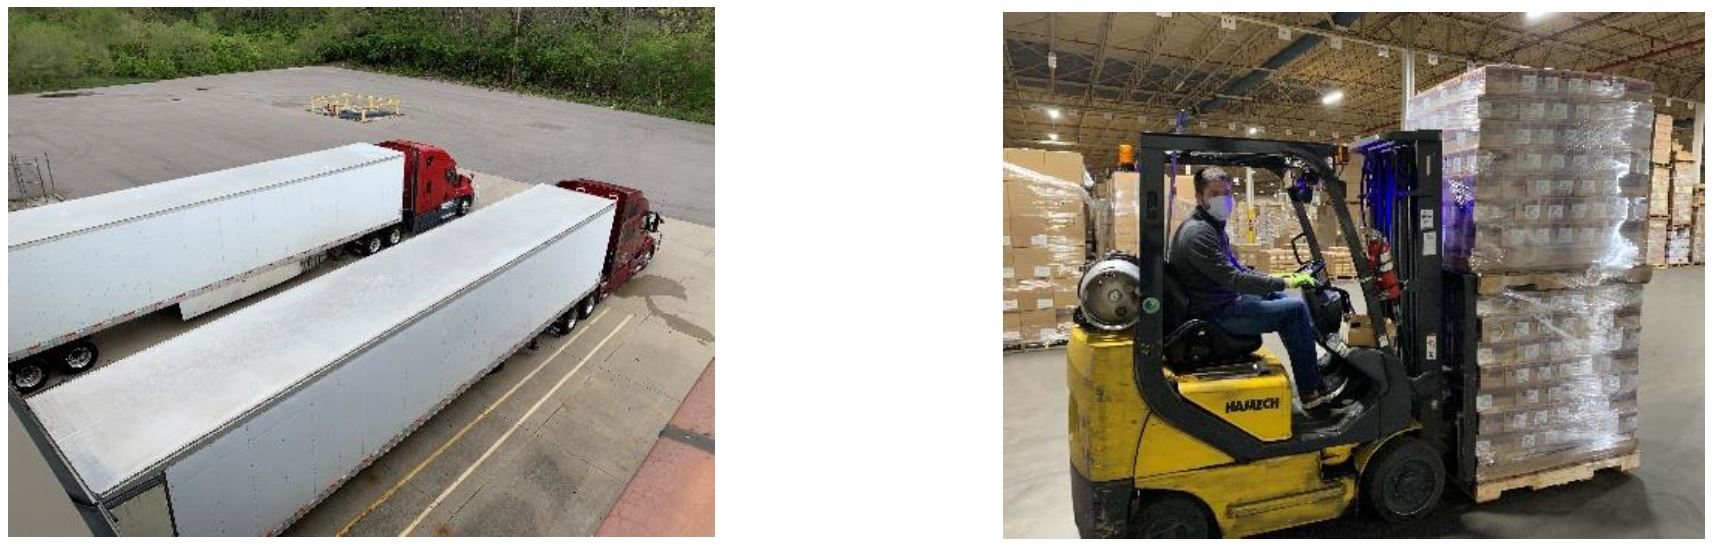 Toys for Tots Response to COVID-19 Pandemic Warehouse